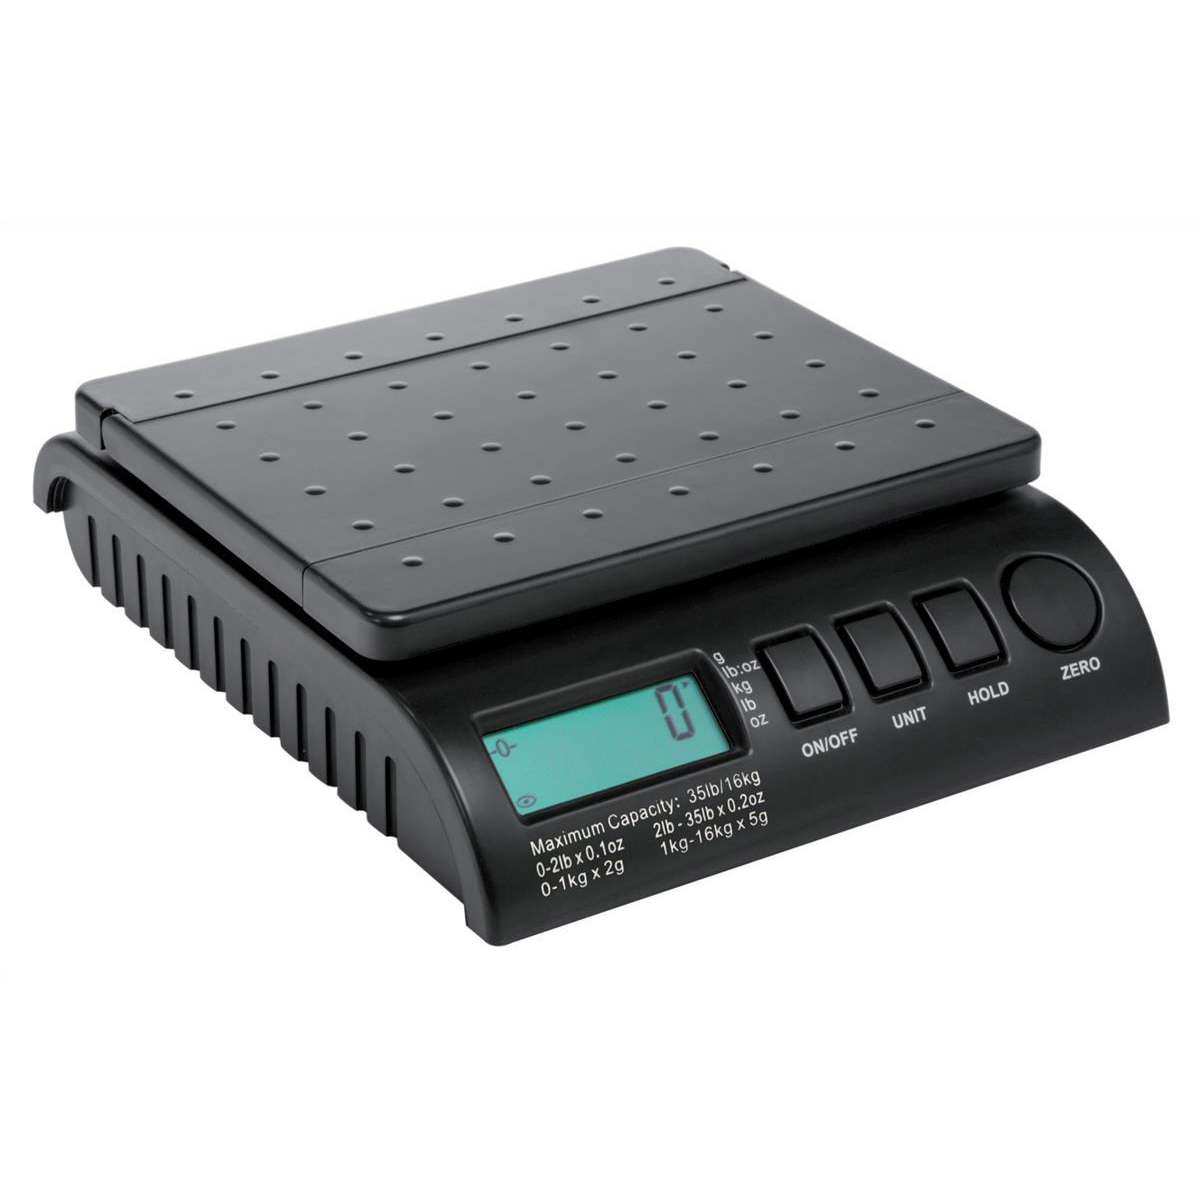 *Postship Multi Purpose Electronic Weighing Scales 2g Increments Capacity16kg Black Ref PS160B (MH)  (SNOY)